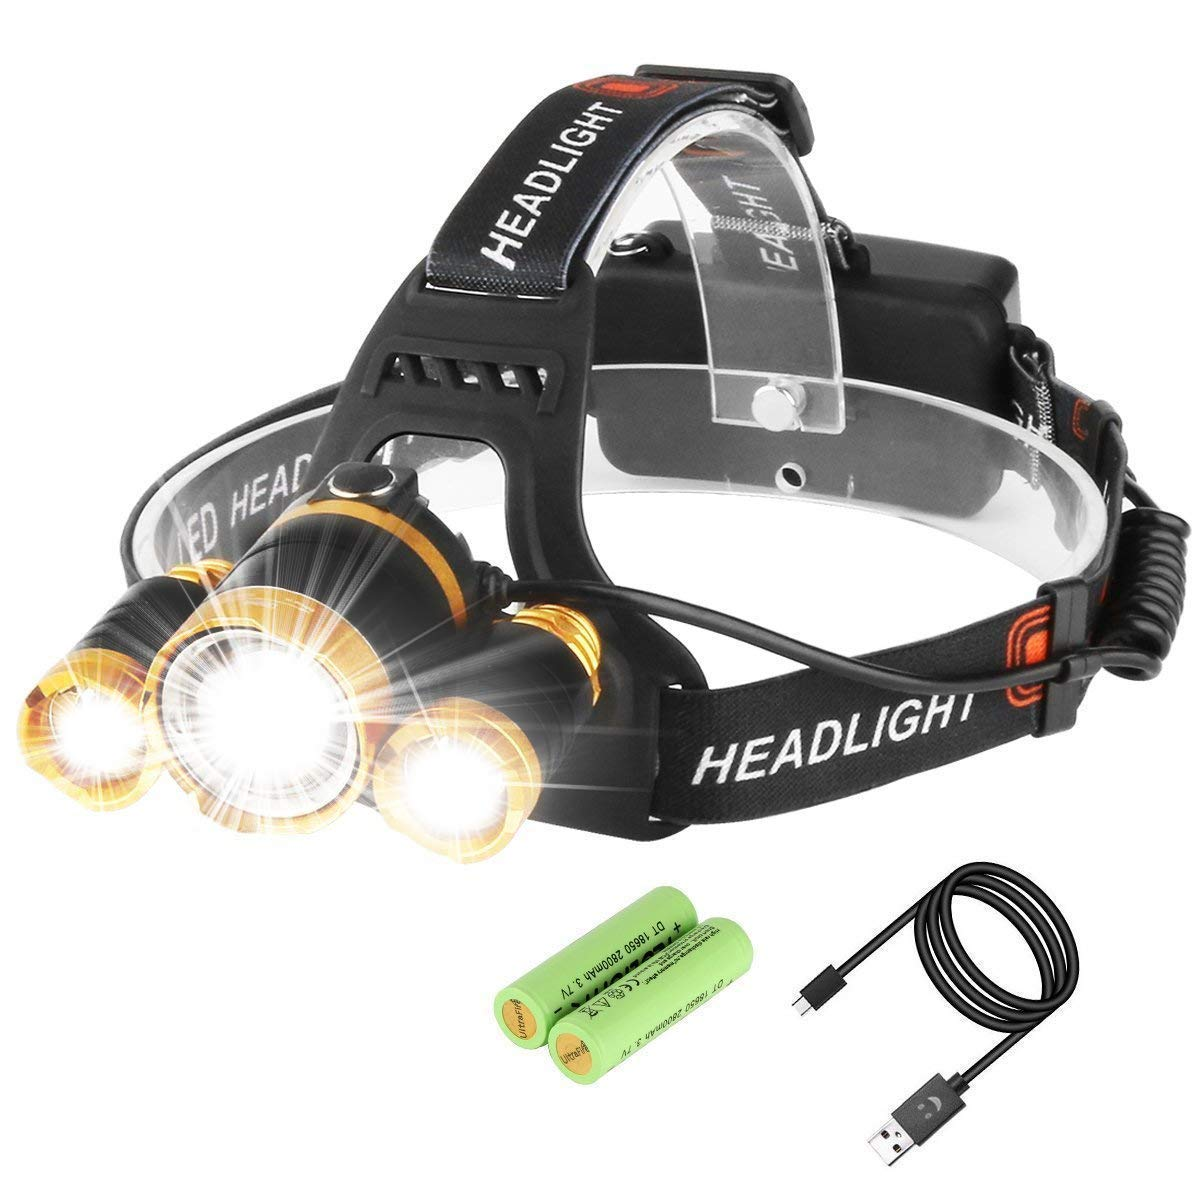 Neolight Led Headlamp Super Bright 5 High Lumen Rechargeable Exciting Scout Crafts 1 Or 2 Zoomable Waterproof Head Torch Headlight Flashlight For Outdoor Hiking Camping Hunting